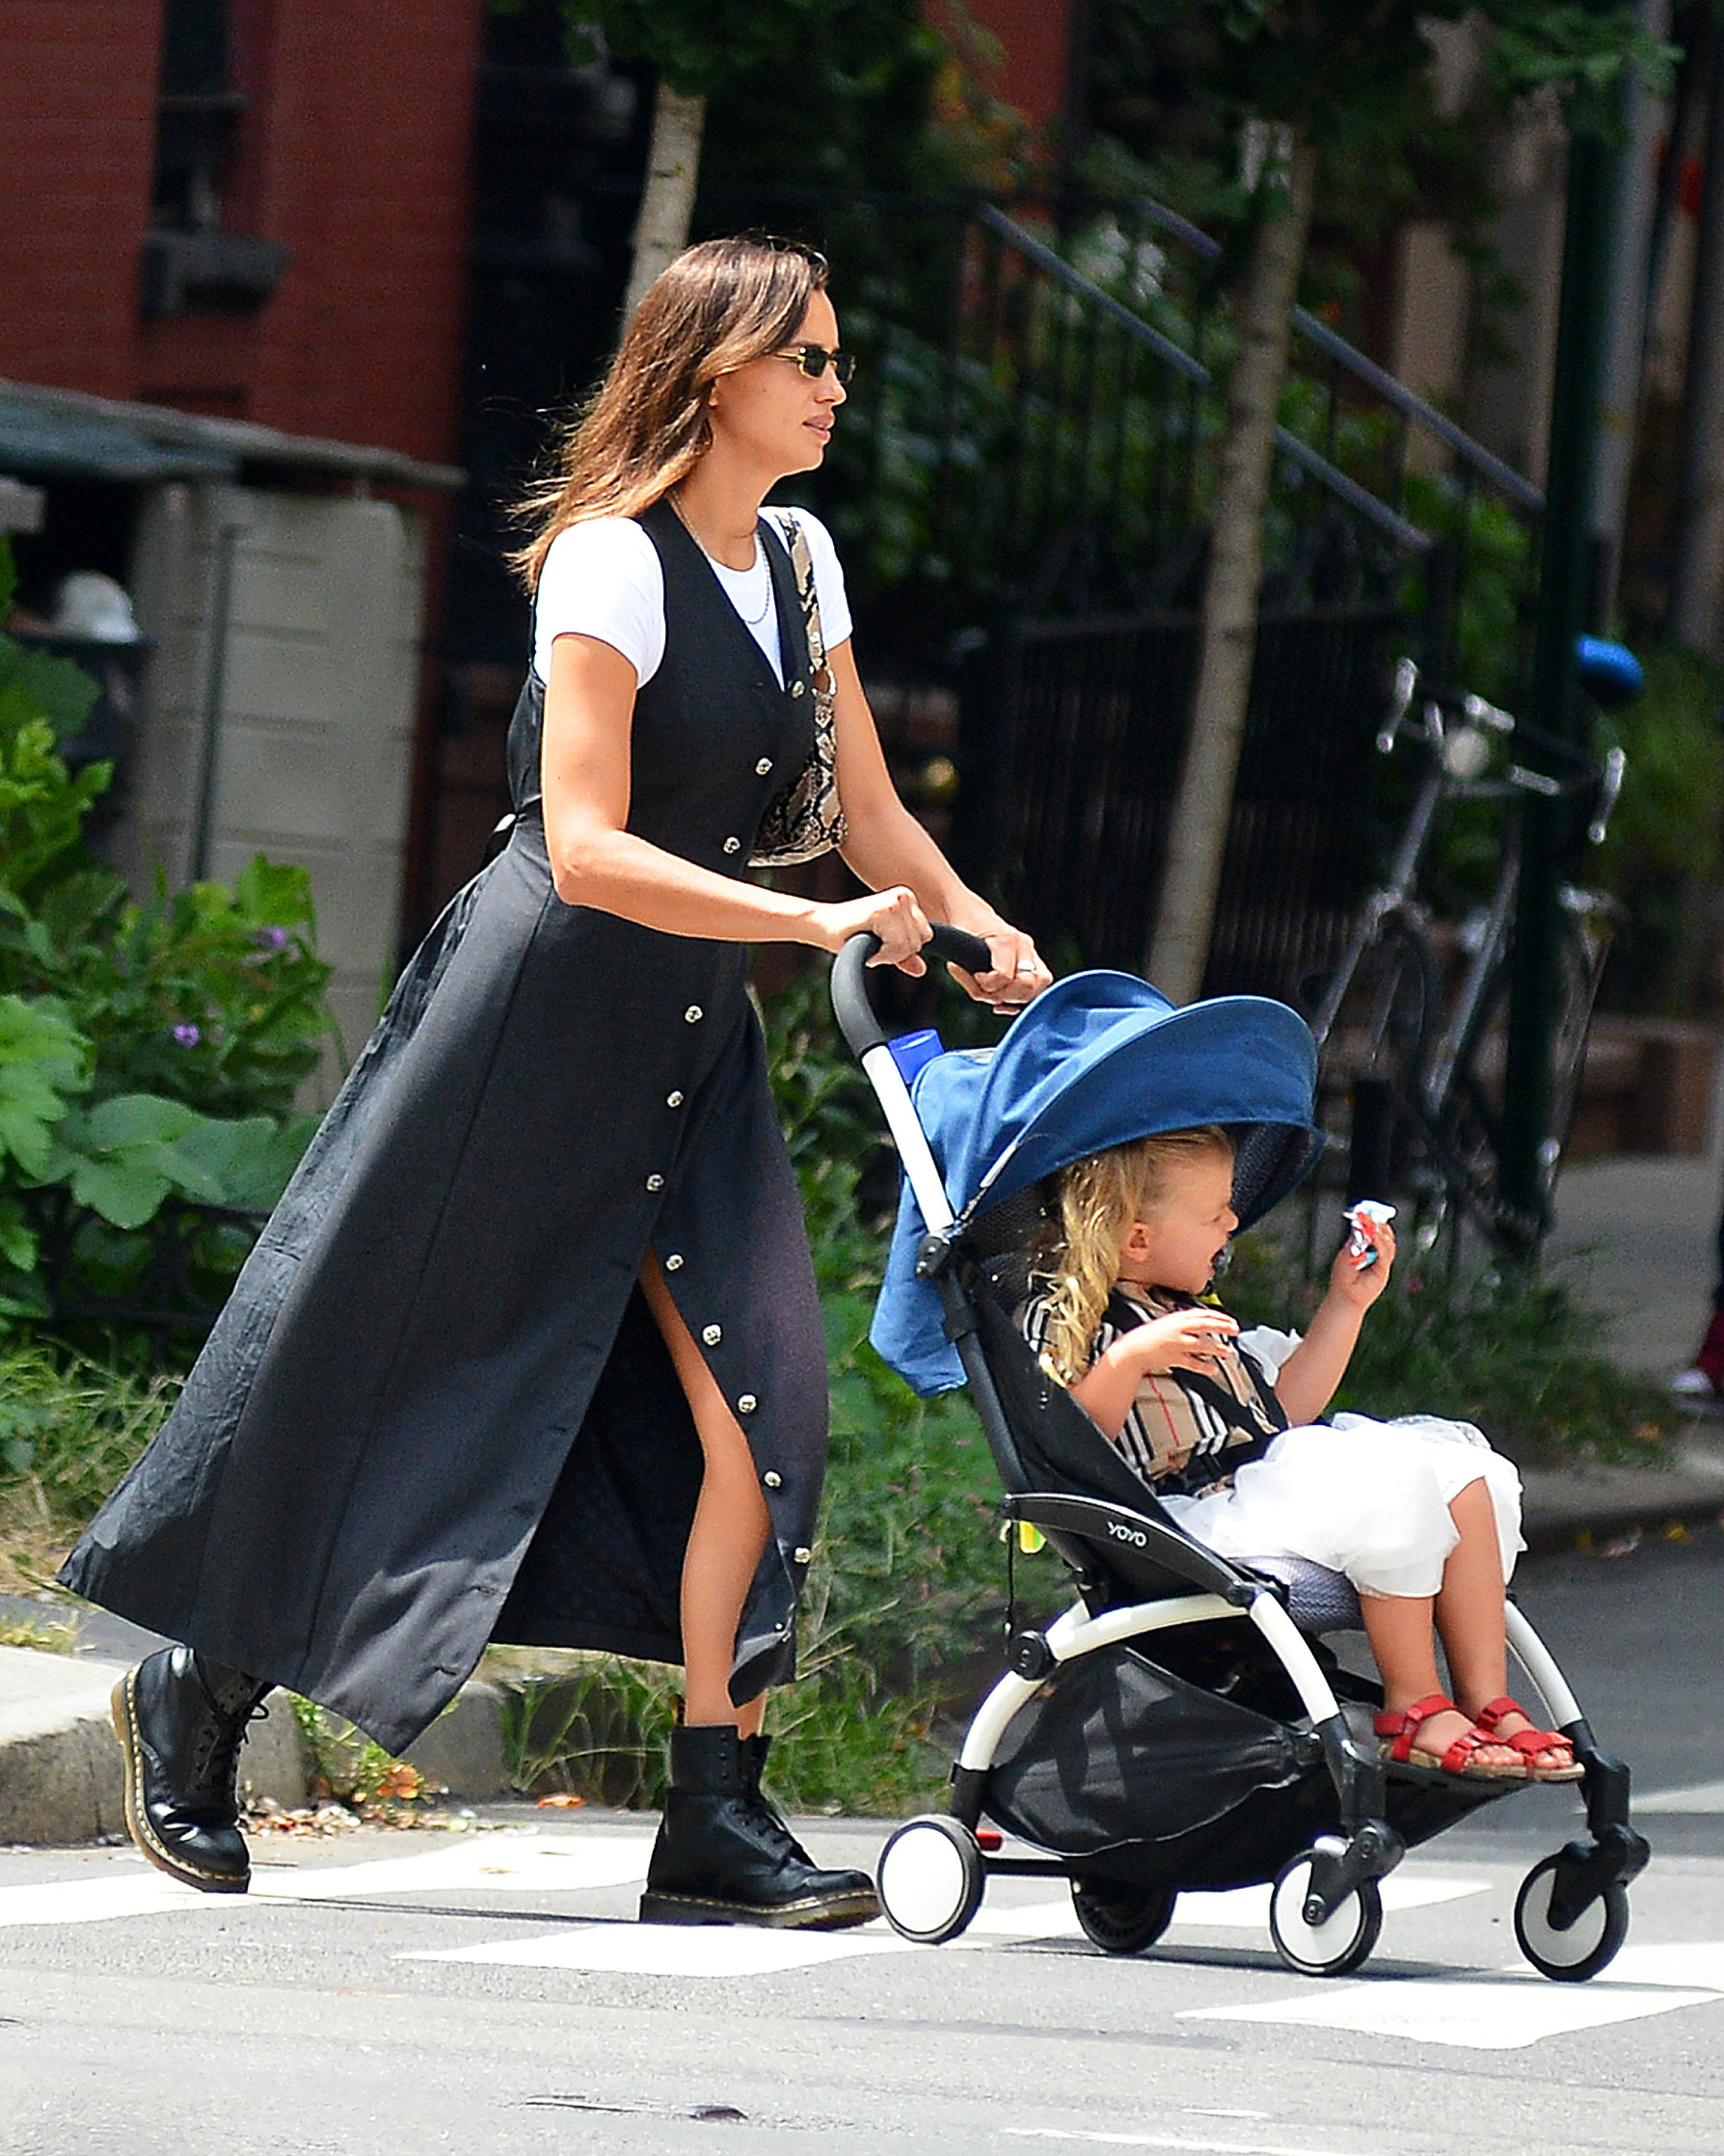 08/21/2020 EXCLUSIVE: Irina Shayk Steps Out With Her Daughter in New York City. The 34 year old model looked casual in a long black dress over a white tee shirt and black Doc Marten boots,Image: 554486310, License: Rights-managed, Restrictions: Exclusive NO usage without agreed price and terms. Please contact sales@theimagedirect.com, Model Release: no, Credit line: TheImageDirect.com / The Image Direct / Profimedia